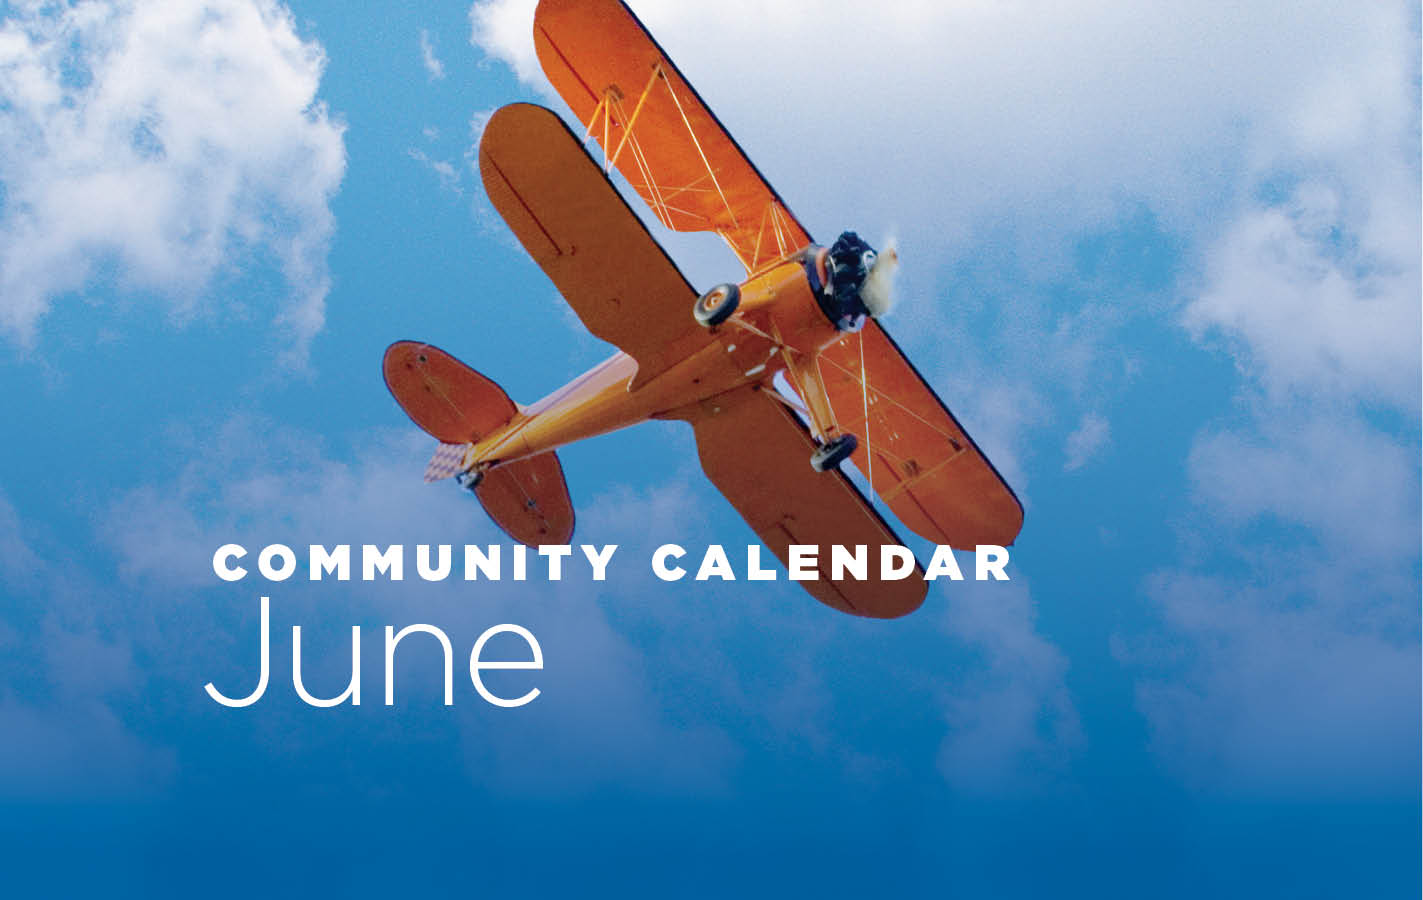 Community Calendar for June 2019